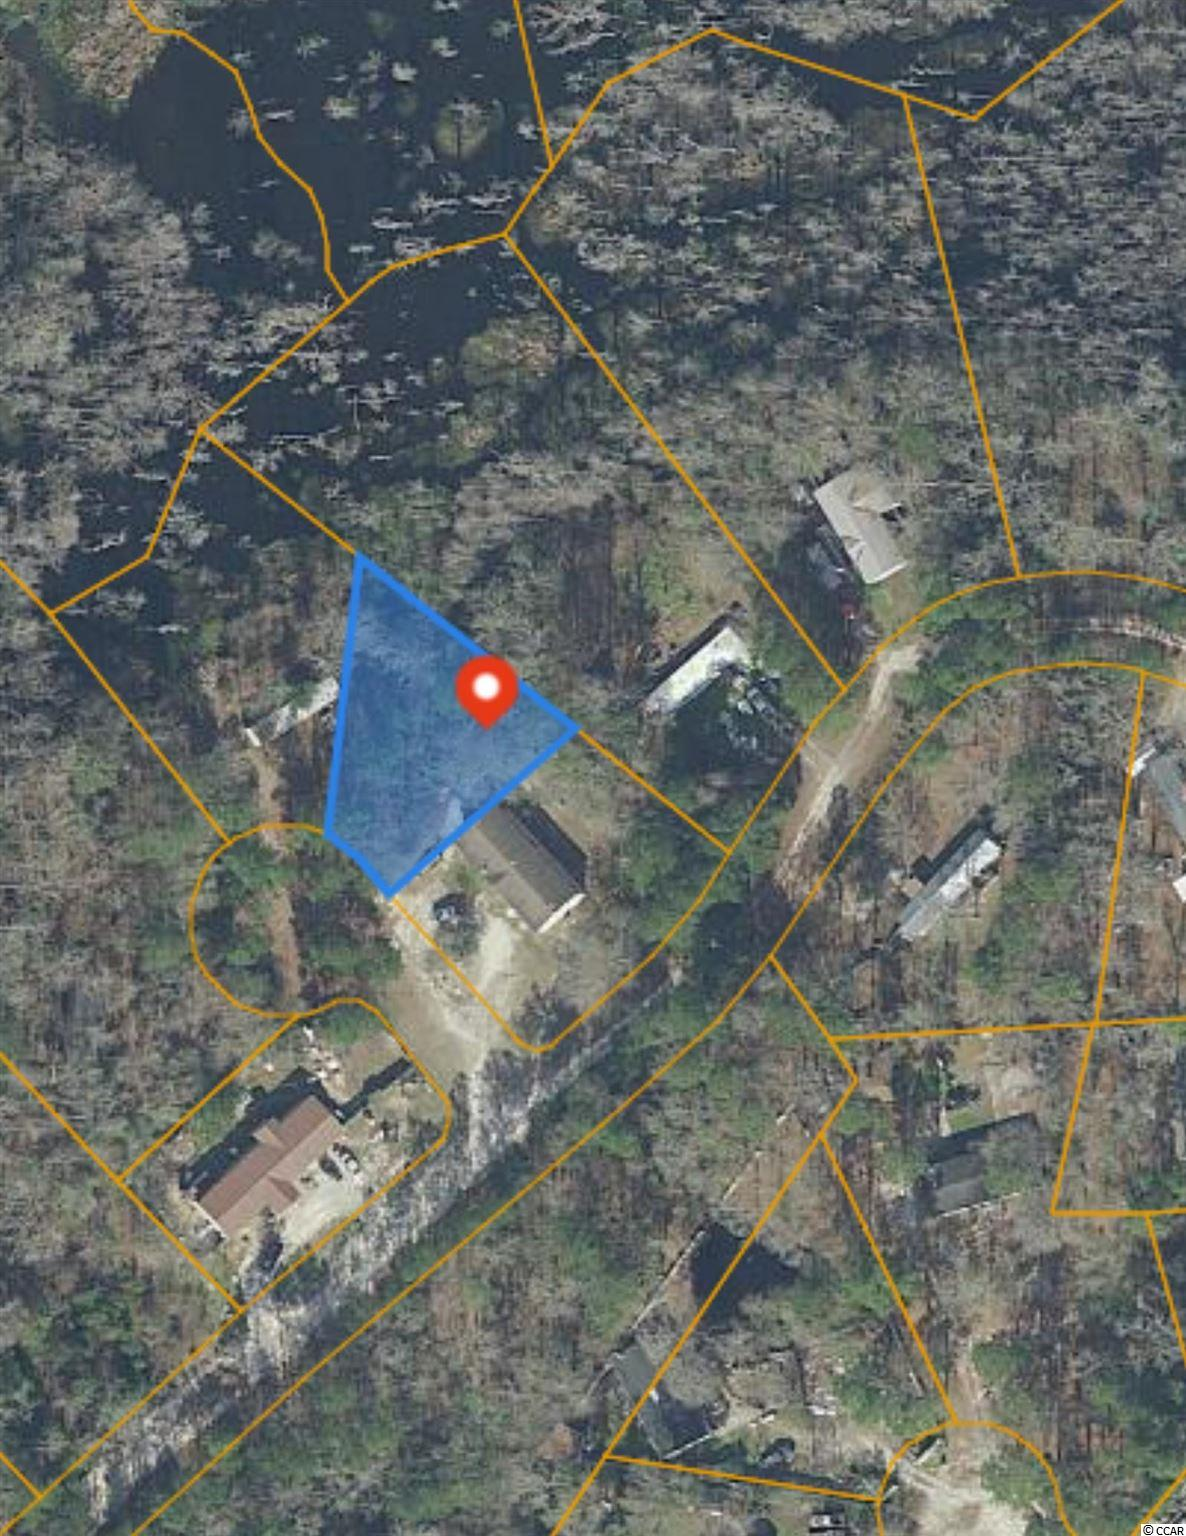 0.30 acre lot with no HOA. Zoned MSF 40 which allows mobile homes. This lot is located about 9 miles from downtown Conway.